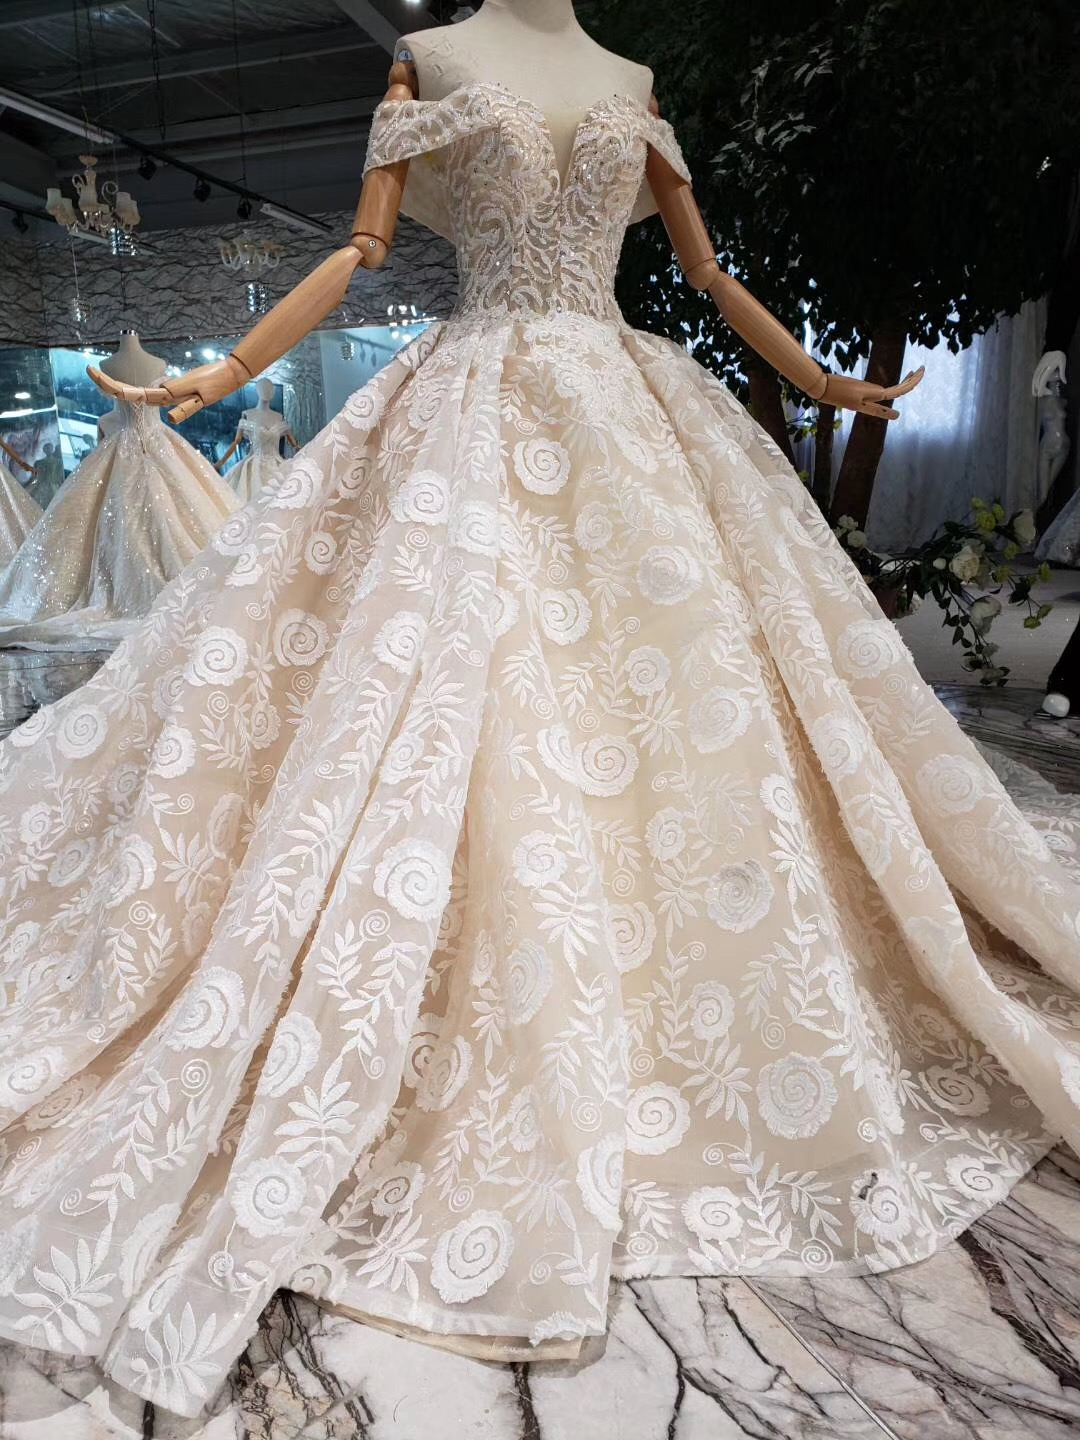 Luxury High Neck Wedding Dress Top Quality Vestido De Noiva Crystals Beads Full Sleeve 3d Lace Beaded Ball Gown Bridal Gowns